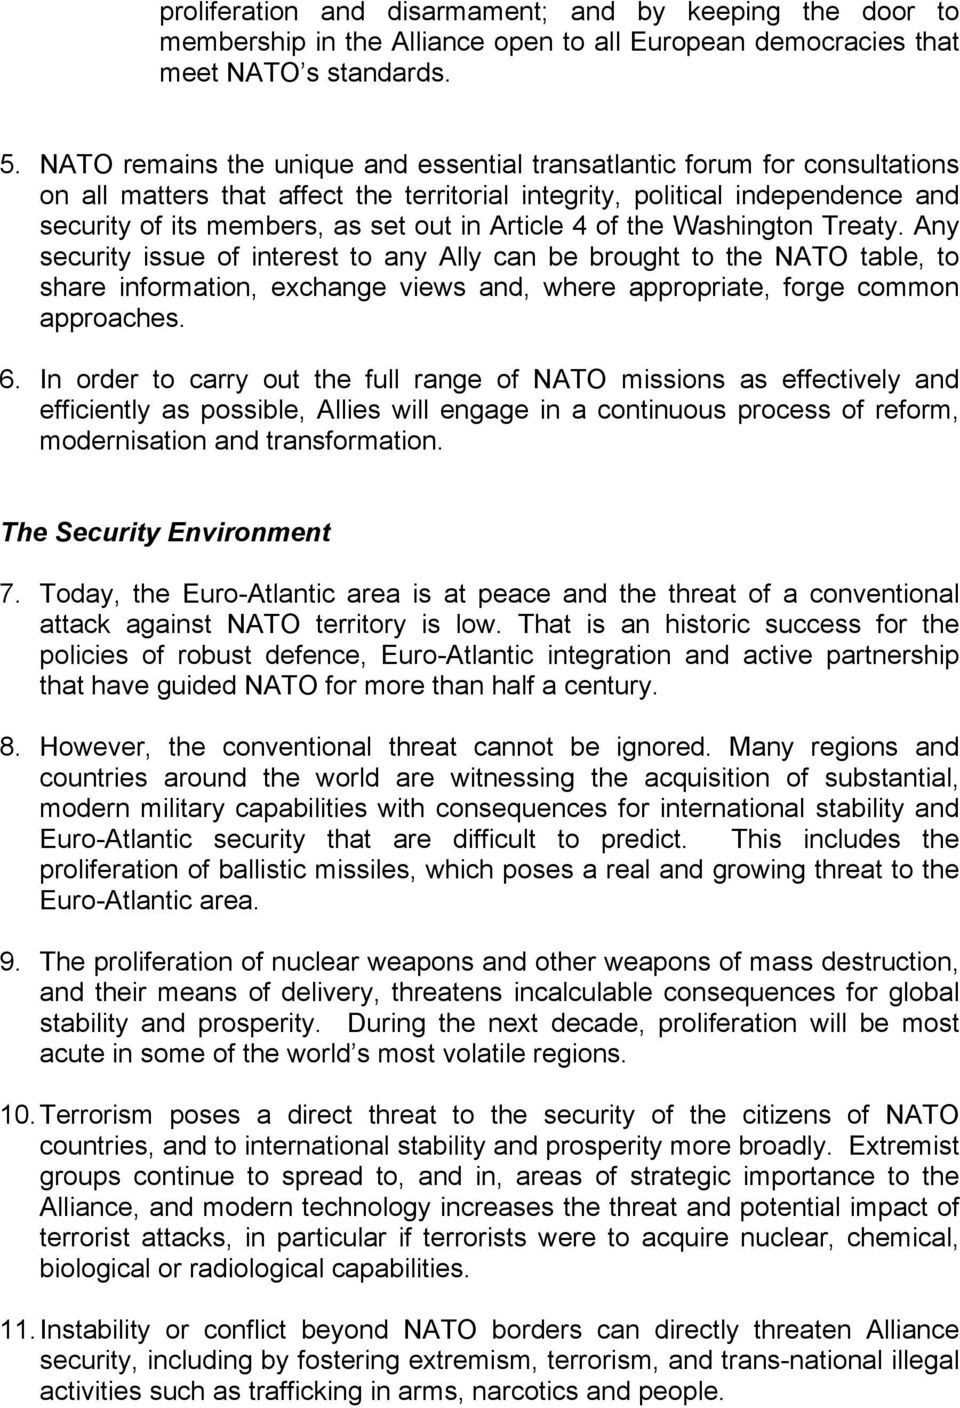 Article 4 of the Washington Treaty. Any security issue of interest to any Ally can be brought to the NATO table, to share information, exchange views and, where appropriate, forge common approaches.